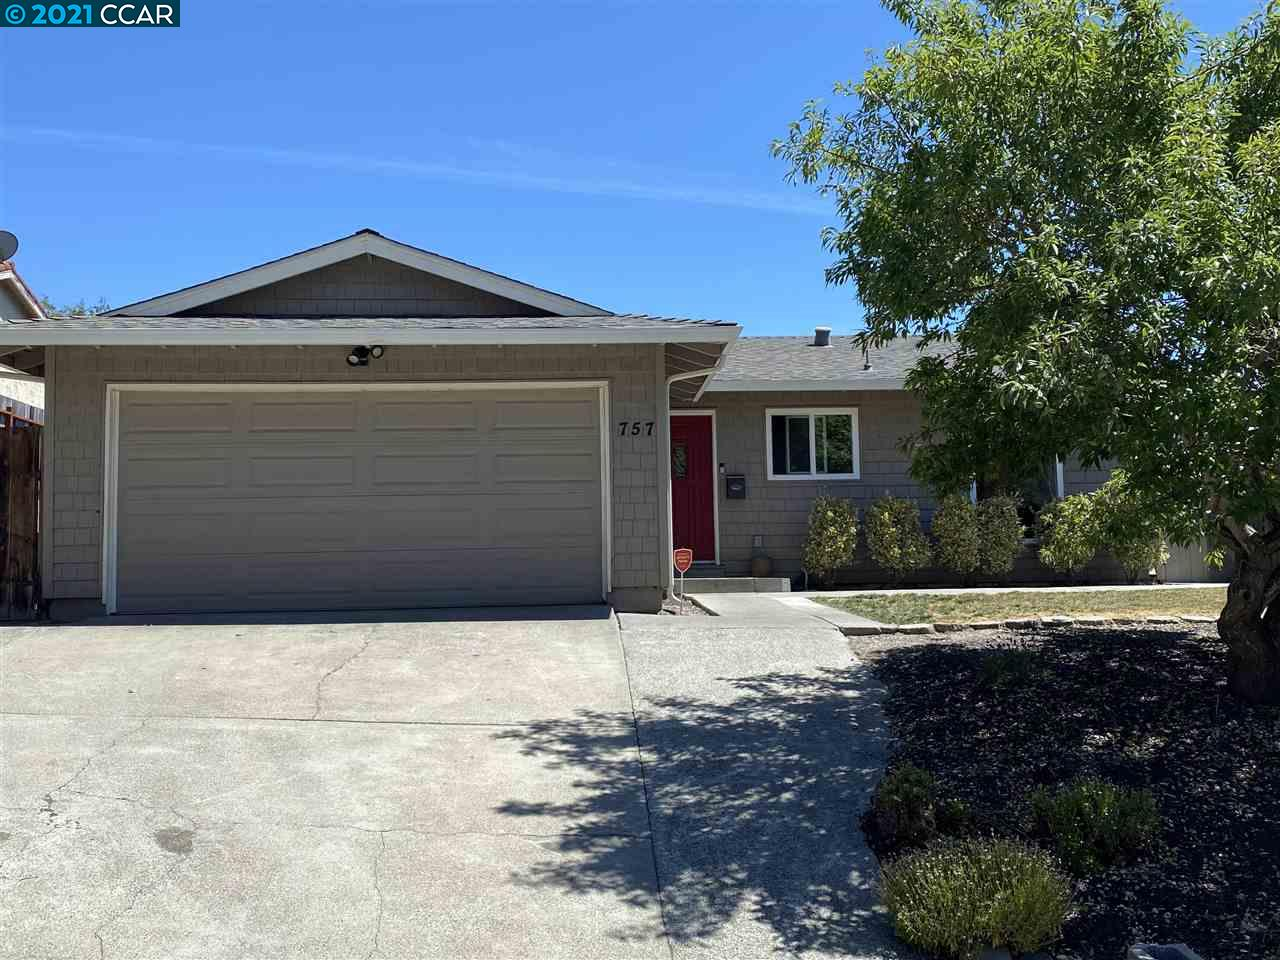 Well kept 4 bed 2 bath house in a quiet neighborhood. Come see the beautiful kitchen and bathrooms, hardwood floors and dual pane windows. Nearby dining, shopping and freeway.